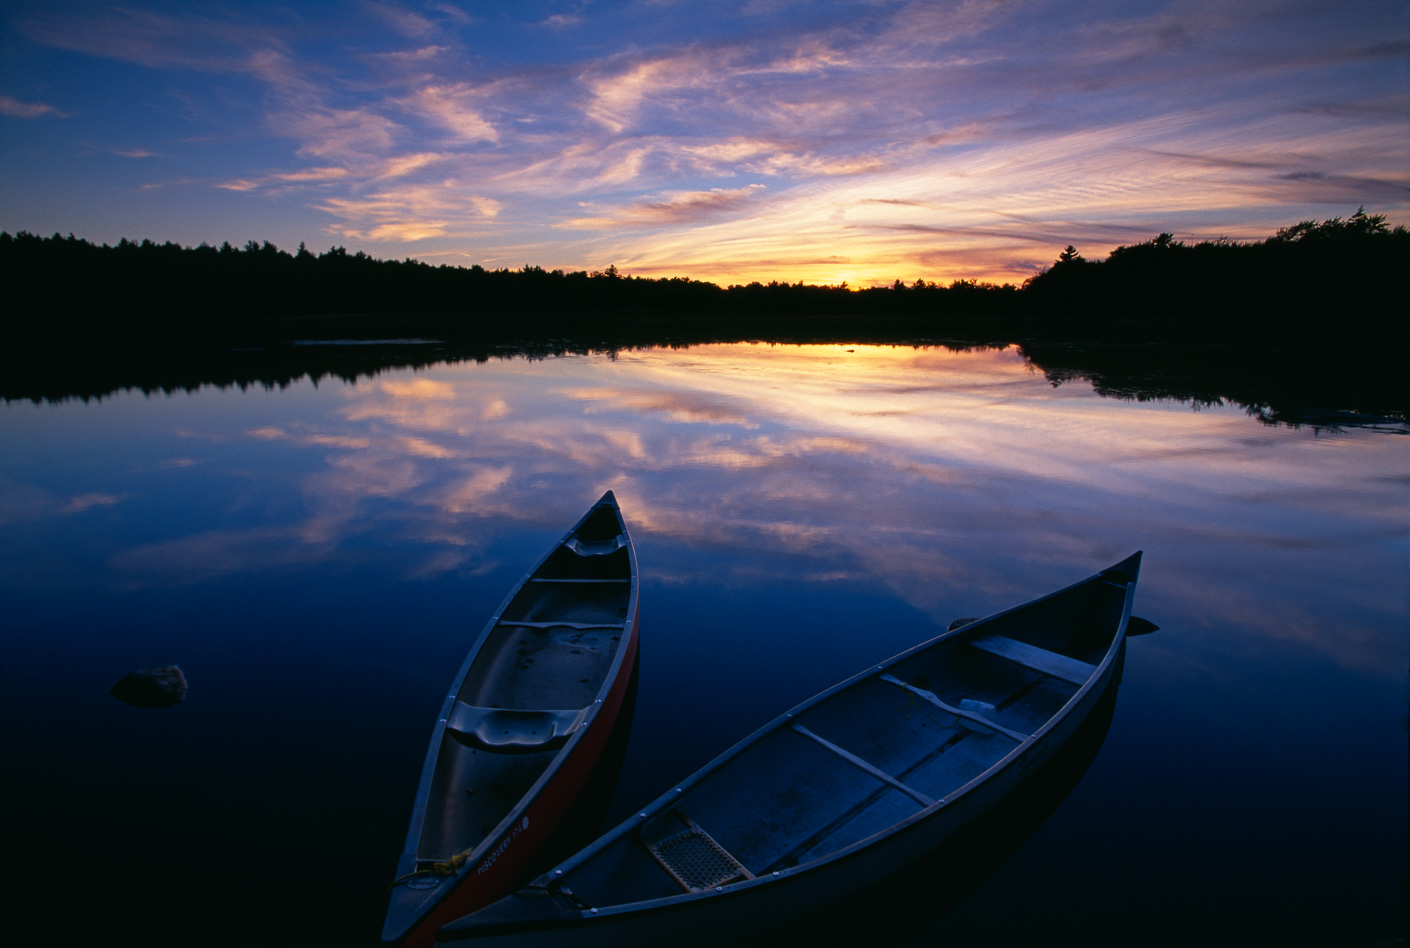 Canoes on the Mersey River, Kejimkujik National Park, Nova Scotia, Canada